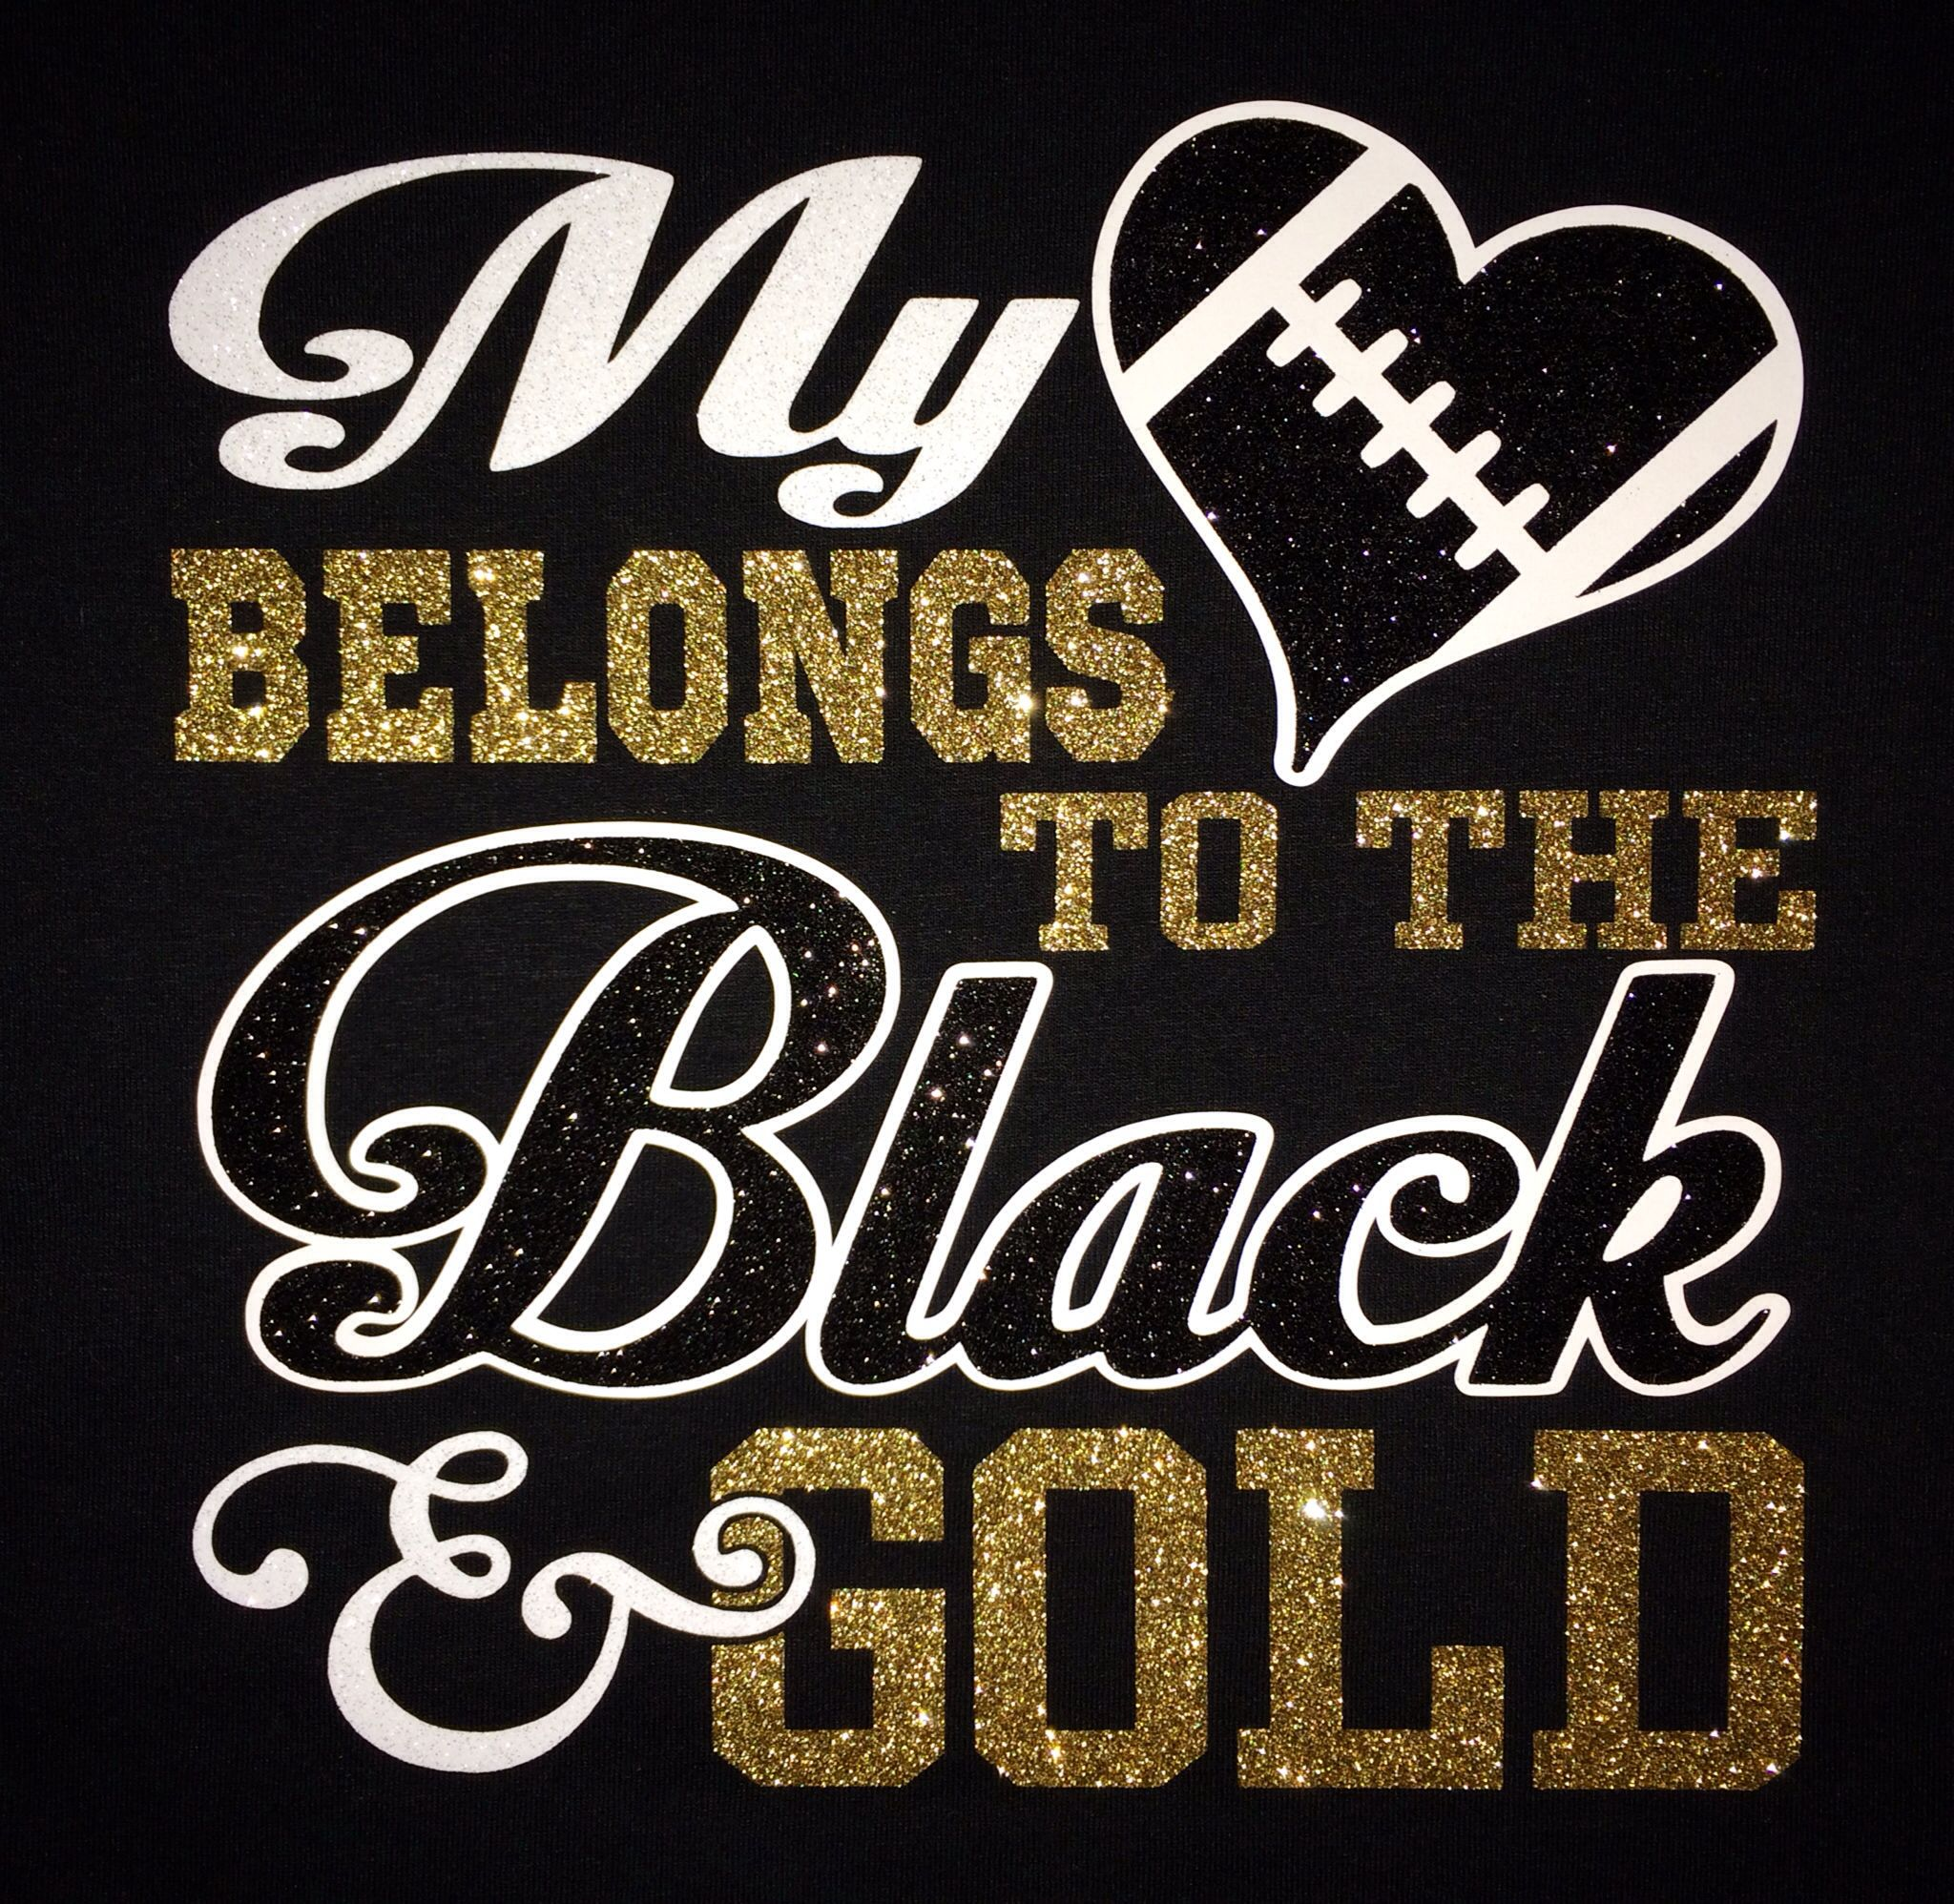 Black t shirt with gold design - Black And Gold